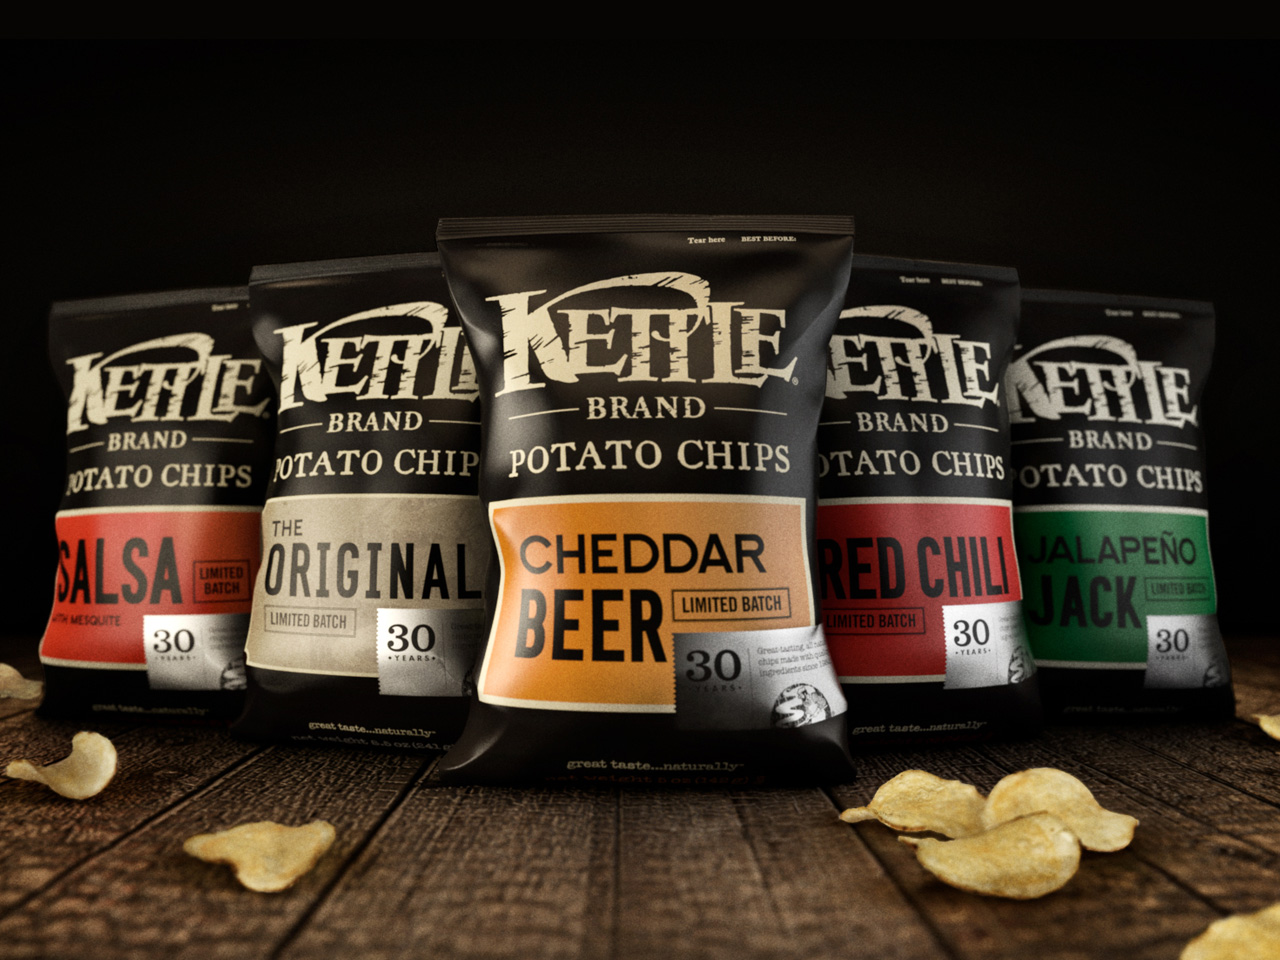 Packaging design for Kettle's limited batch special edition flavors, celebrating 30 years of great tasting kettle cooked potato chips